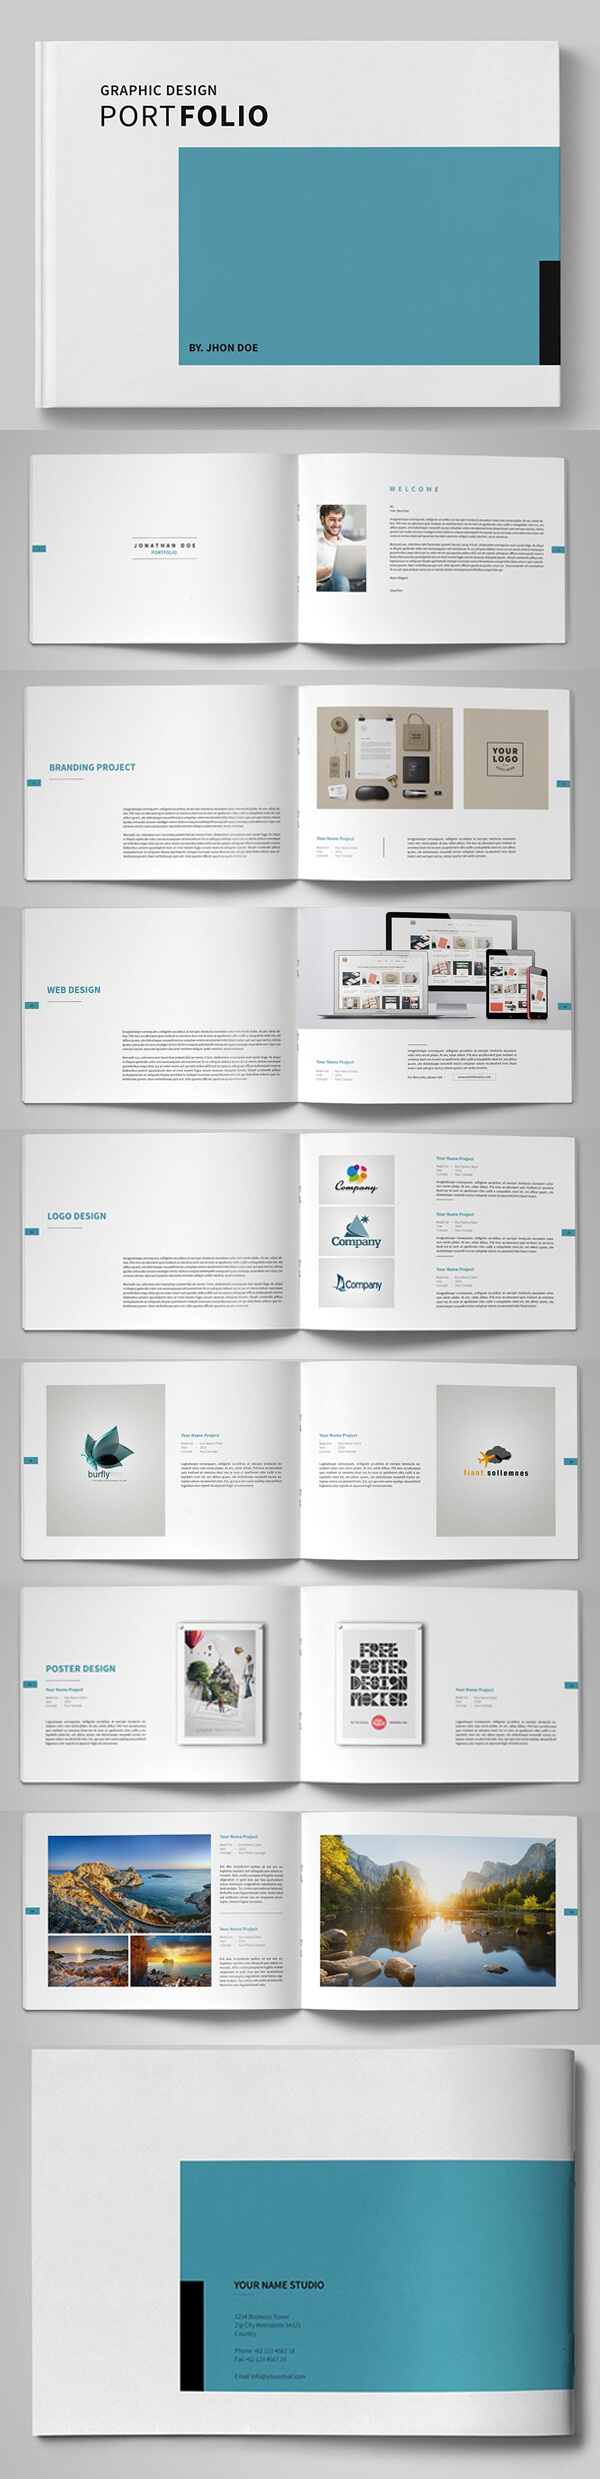 20 New Professional Catalog Brochure Templates | Design inside Product Brochure Template Free